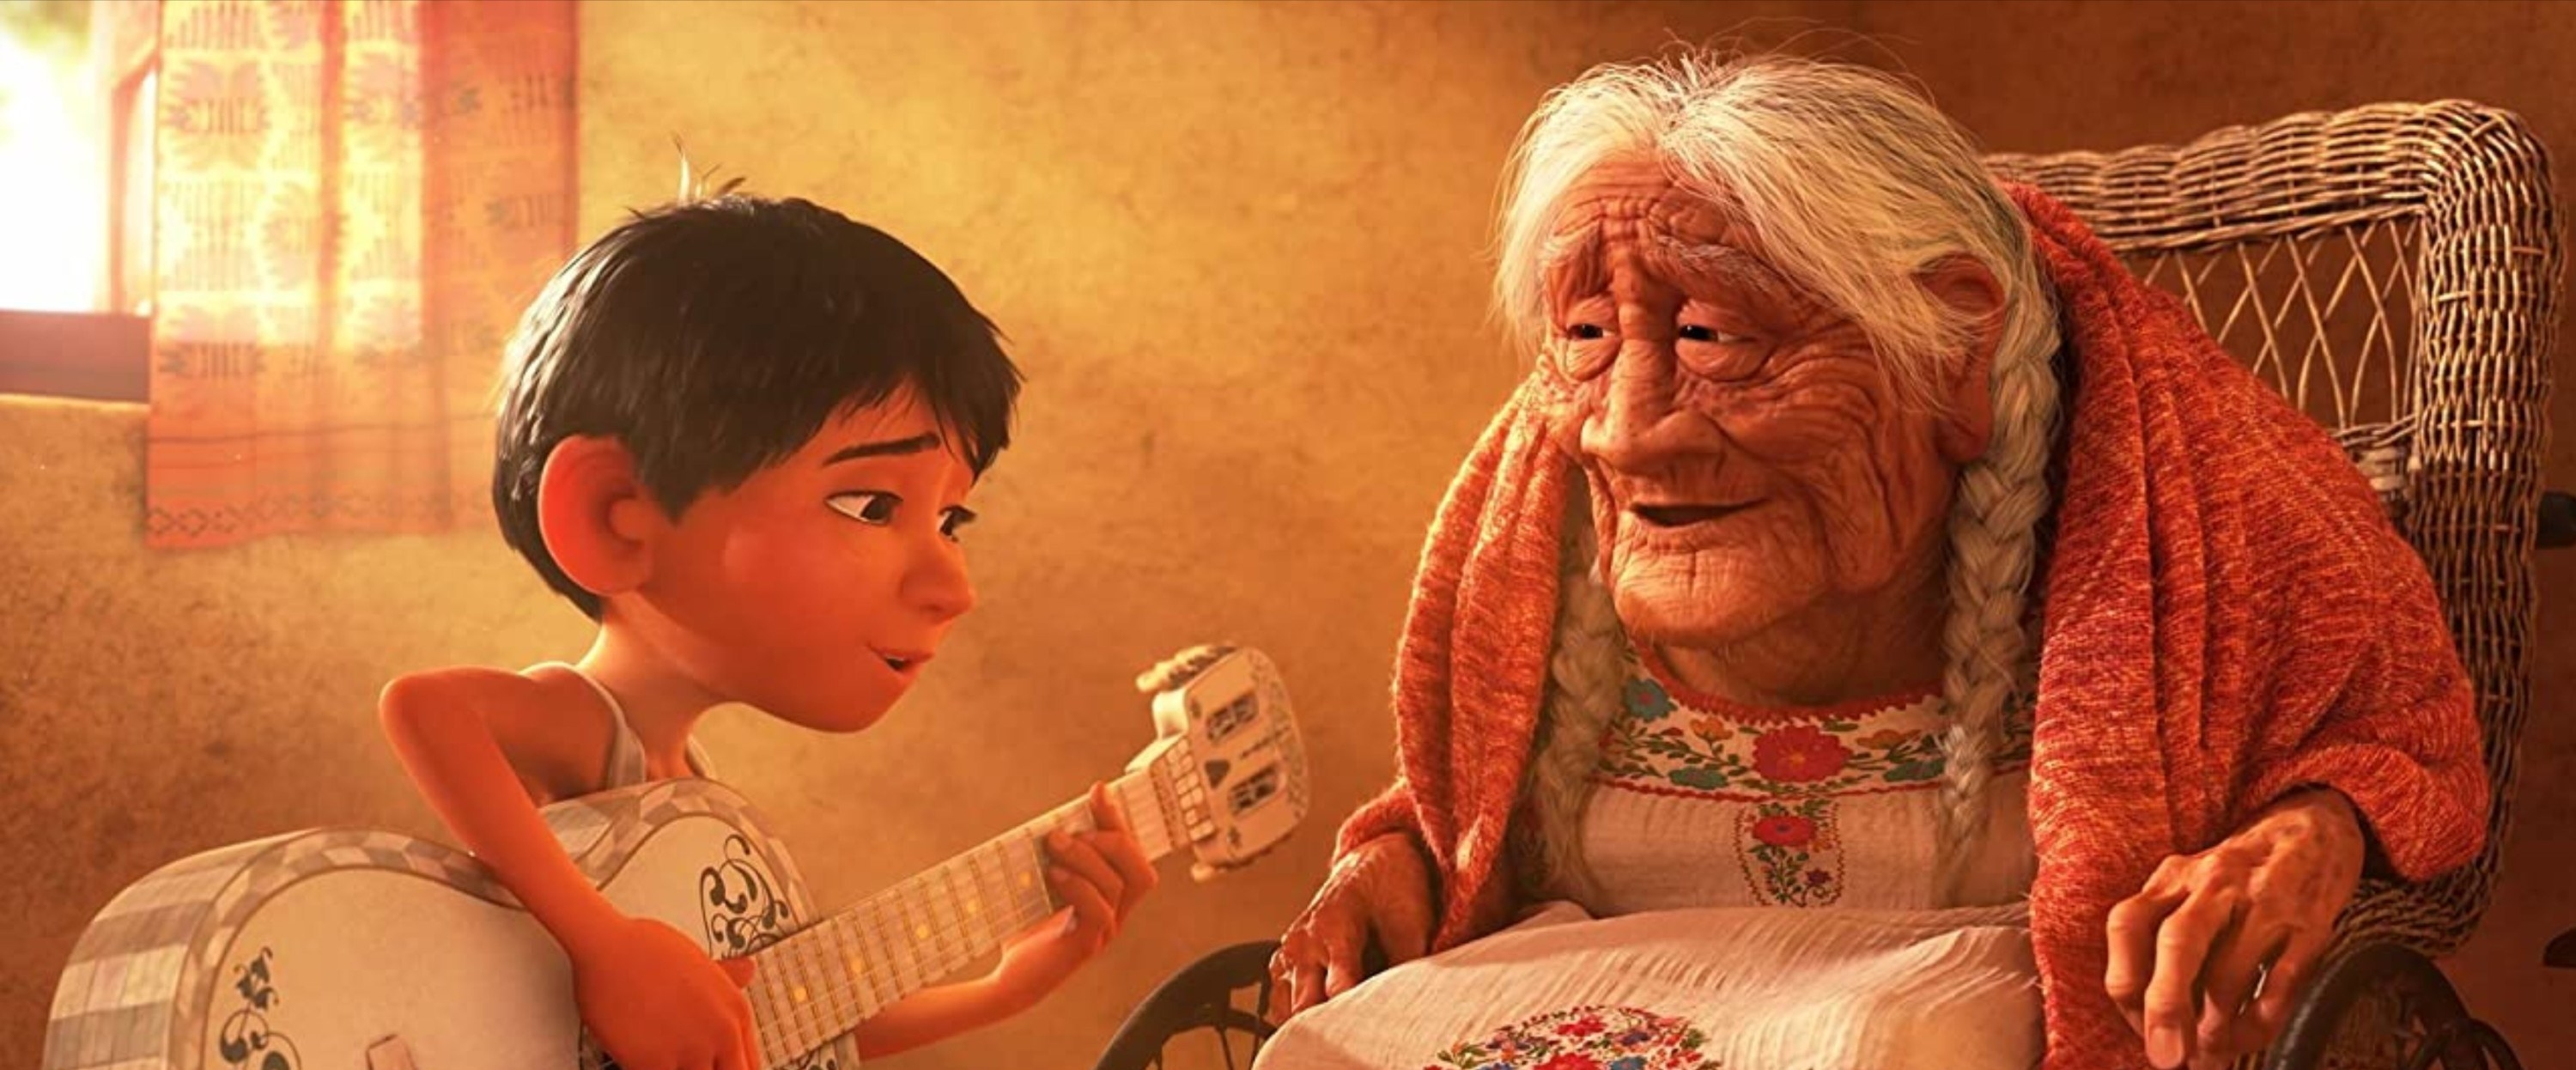 Miguel playing the guitar and singing to Mama Coco